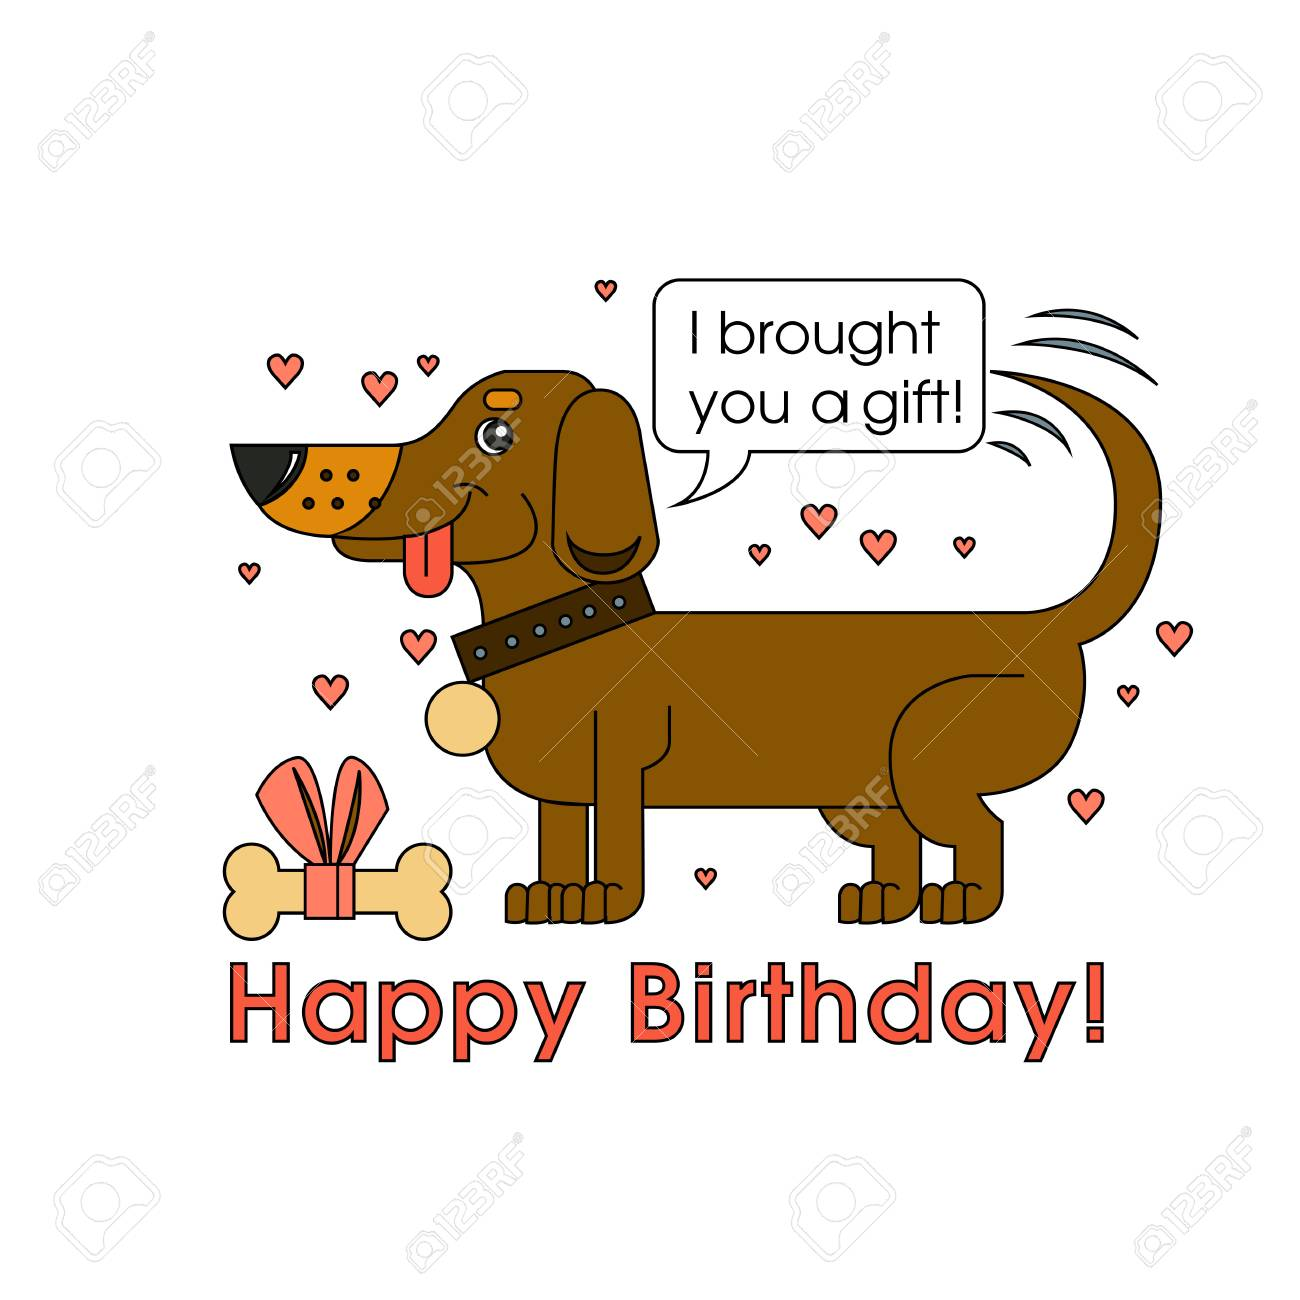 Happy Birthday Card For Dog Lover Of The Breed Dachshund Congratulates On